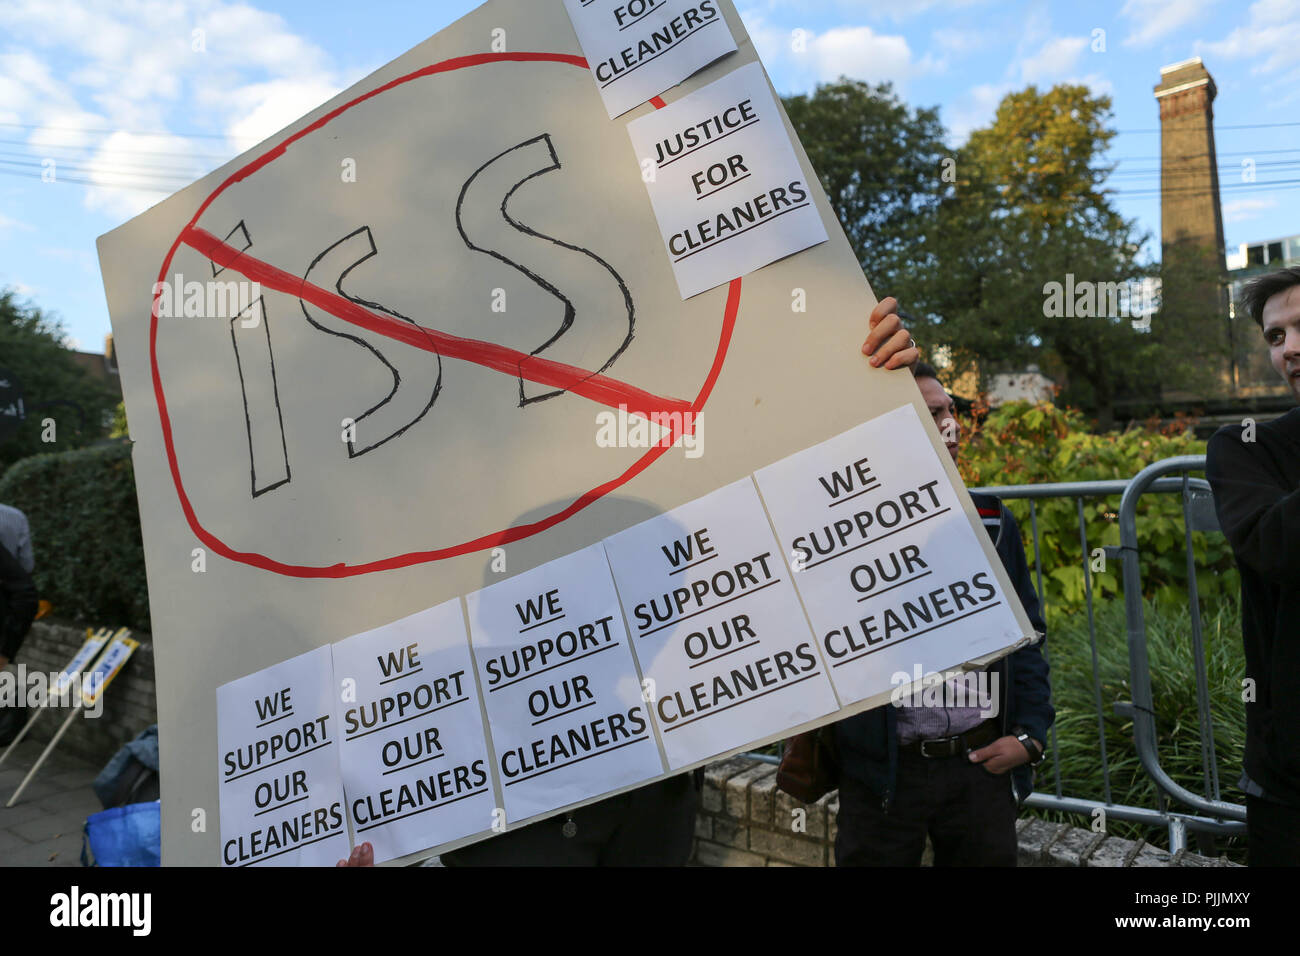 London, UK. 7th Sept 2018. Demonstration outside the Goldsmith Gallery calling for cleaners to be taken in house and end their ongoing problems with current employer ISS. Penelope Barritt/Alamy Live News Stock Photo